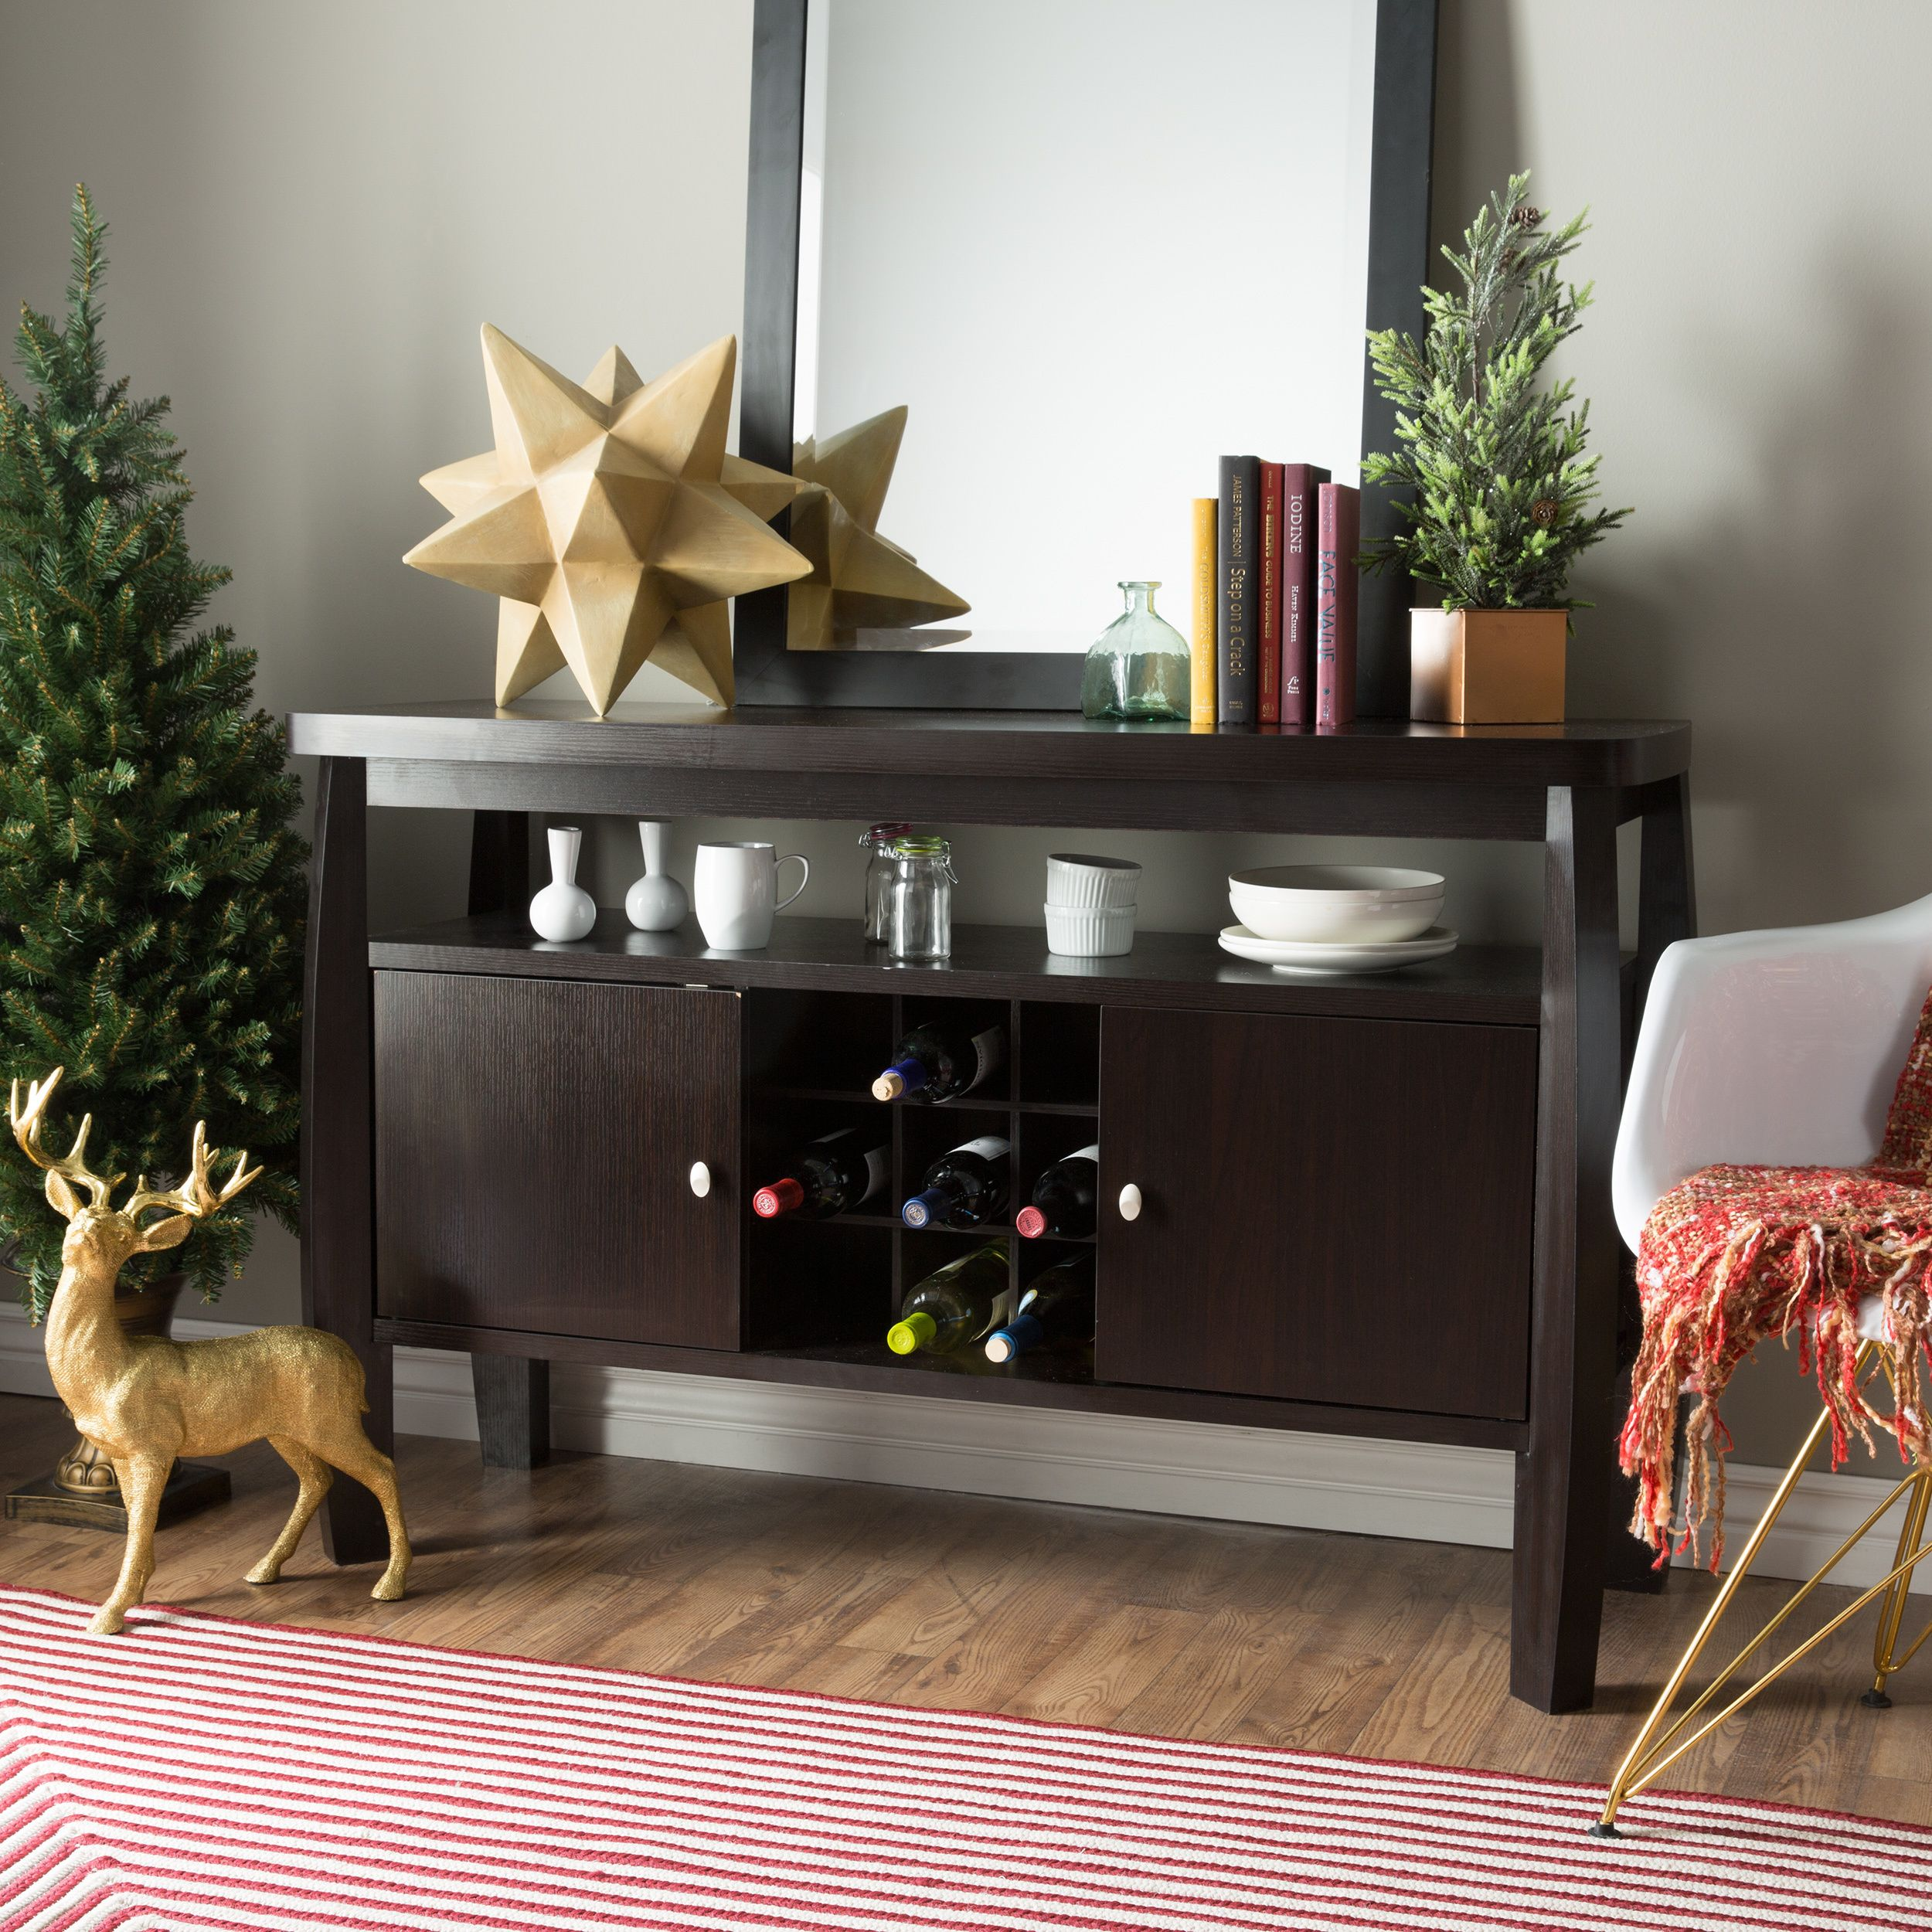 Add An Elegant Touch To Any Room With This Durable Espresso Buffet Table.  The Elegant